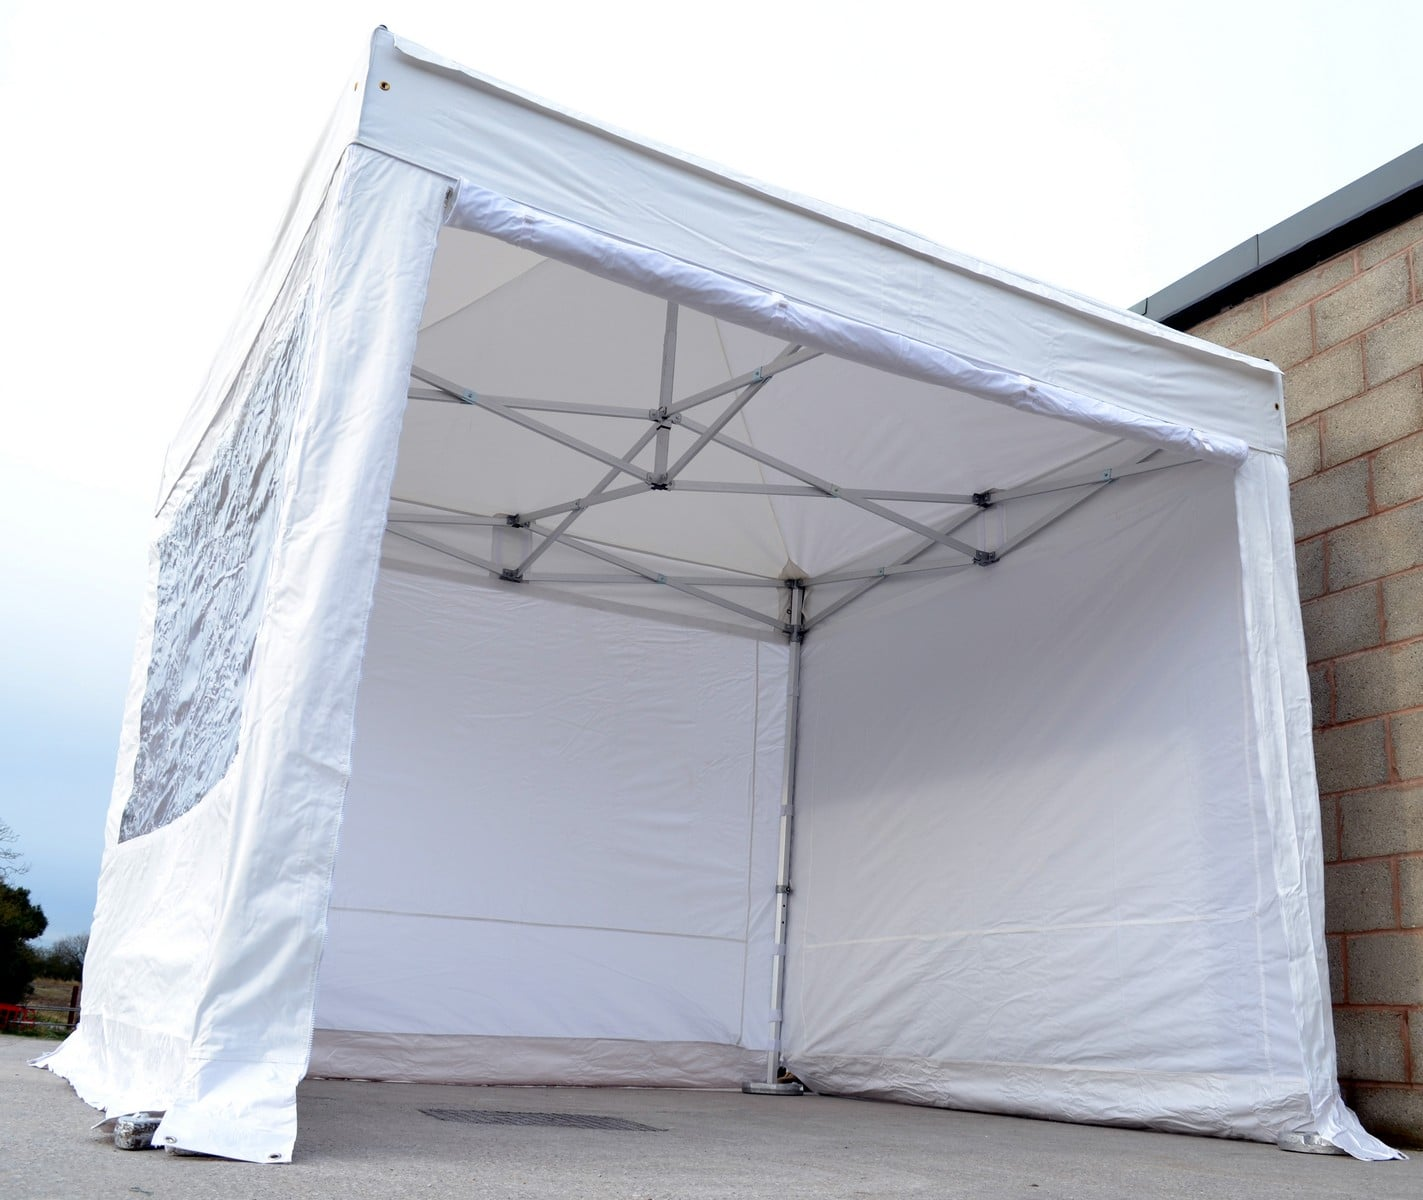 3m x 2m Protex 40 Compact Instant Shelter